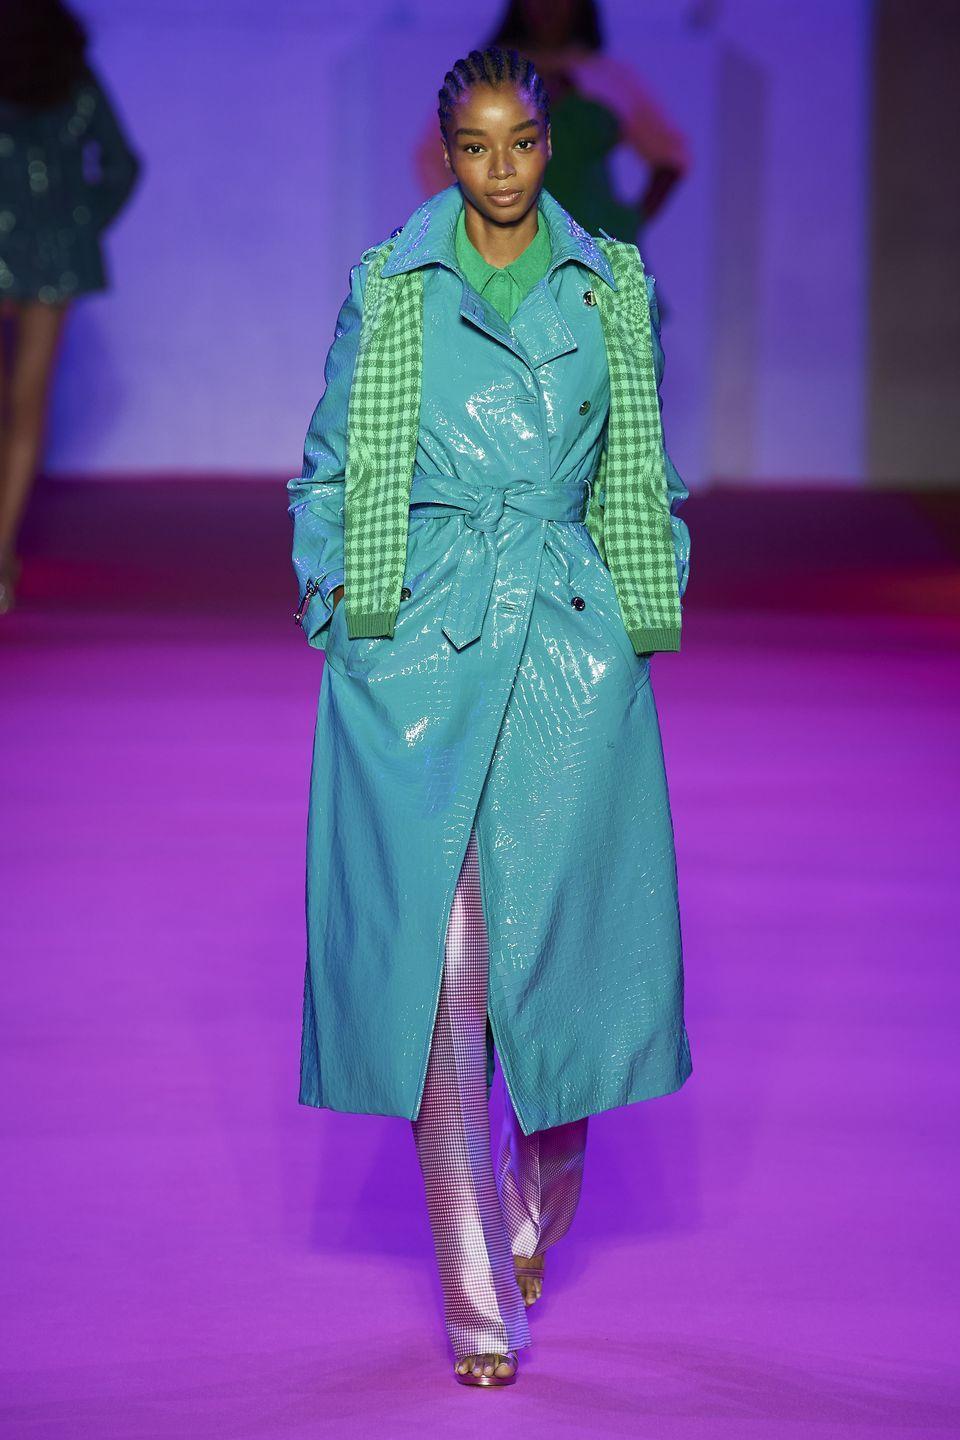 """<p>Brandon Maxwell returned to the catwalk with a bang, presenting a collection that was filled with colour, which is usual for the designer, but also filled with prints, which is something new. </p><p>""""I realised a year-and-a-half ago it could be the last time, and if I had another chance to show, I wanted it to be me, the me my friends know,"""" Maxwell said backstage of his decision to inject a bit more of himself into the collection, which saw less gowns and eveningwear than we often find on his catwalk and more casual, wearable styles, including midi dresses, printed separates and some seriously amazing coats.</p>"""